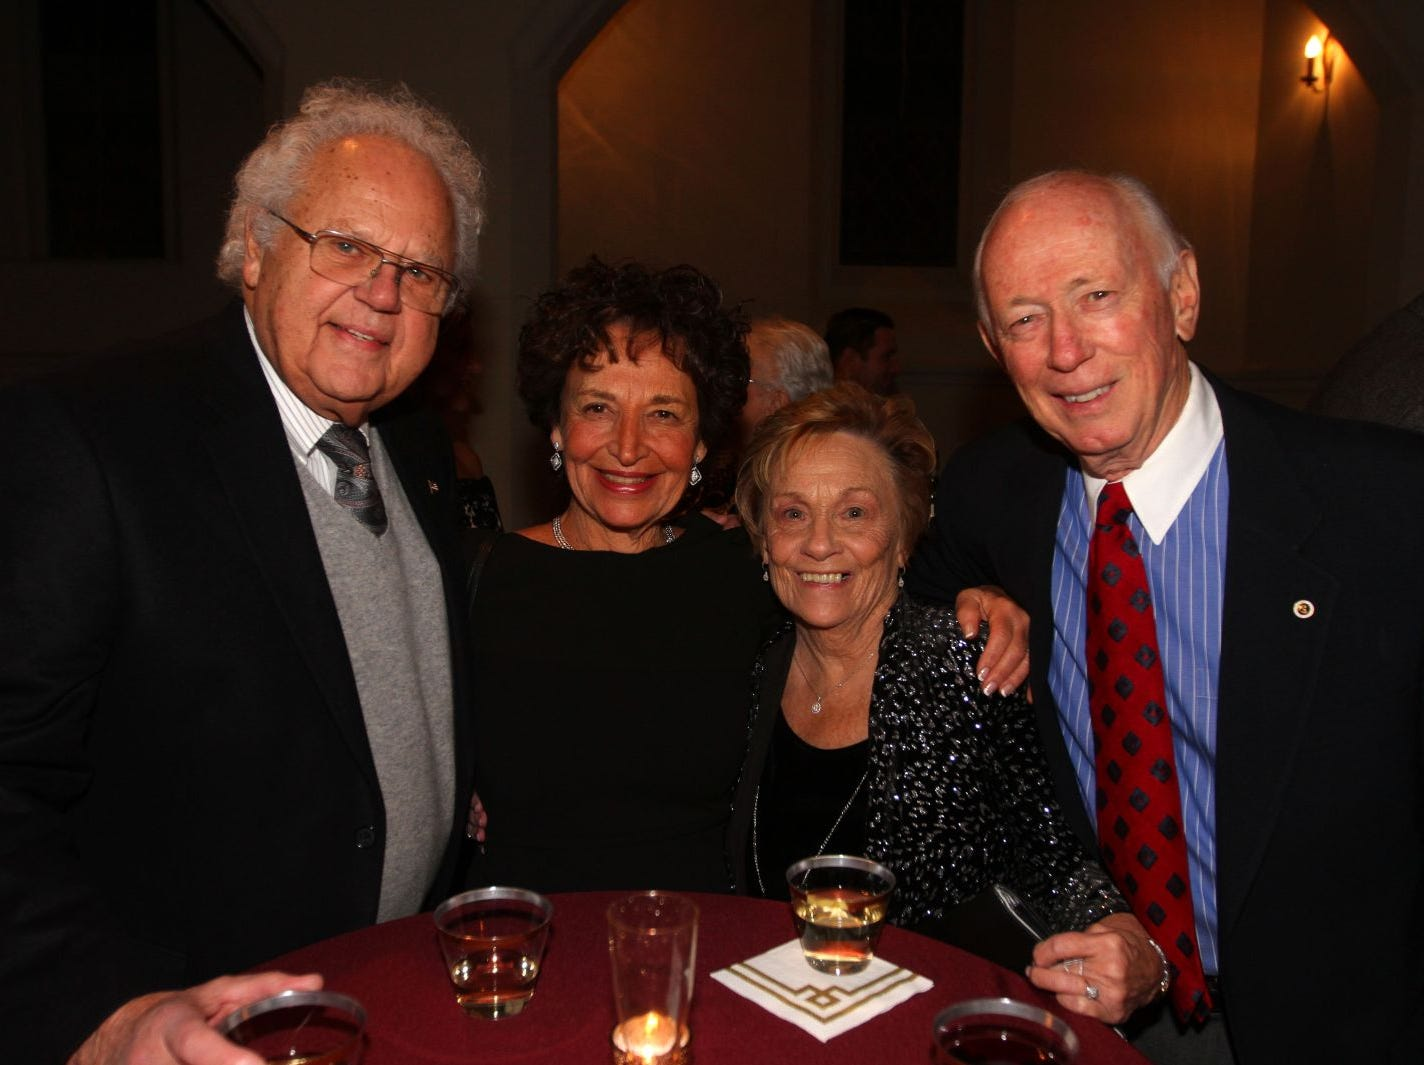 Judge Ed Torack and Joann Torack with friends. Wyckoff Family YMCA hosted its 75th anniversary gala to celebrate its benefactors, held at the Rio Vista seminary in Mahwah. 11/16/2018